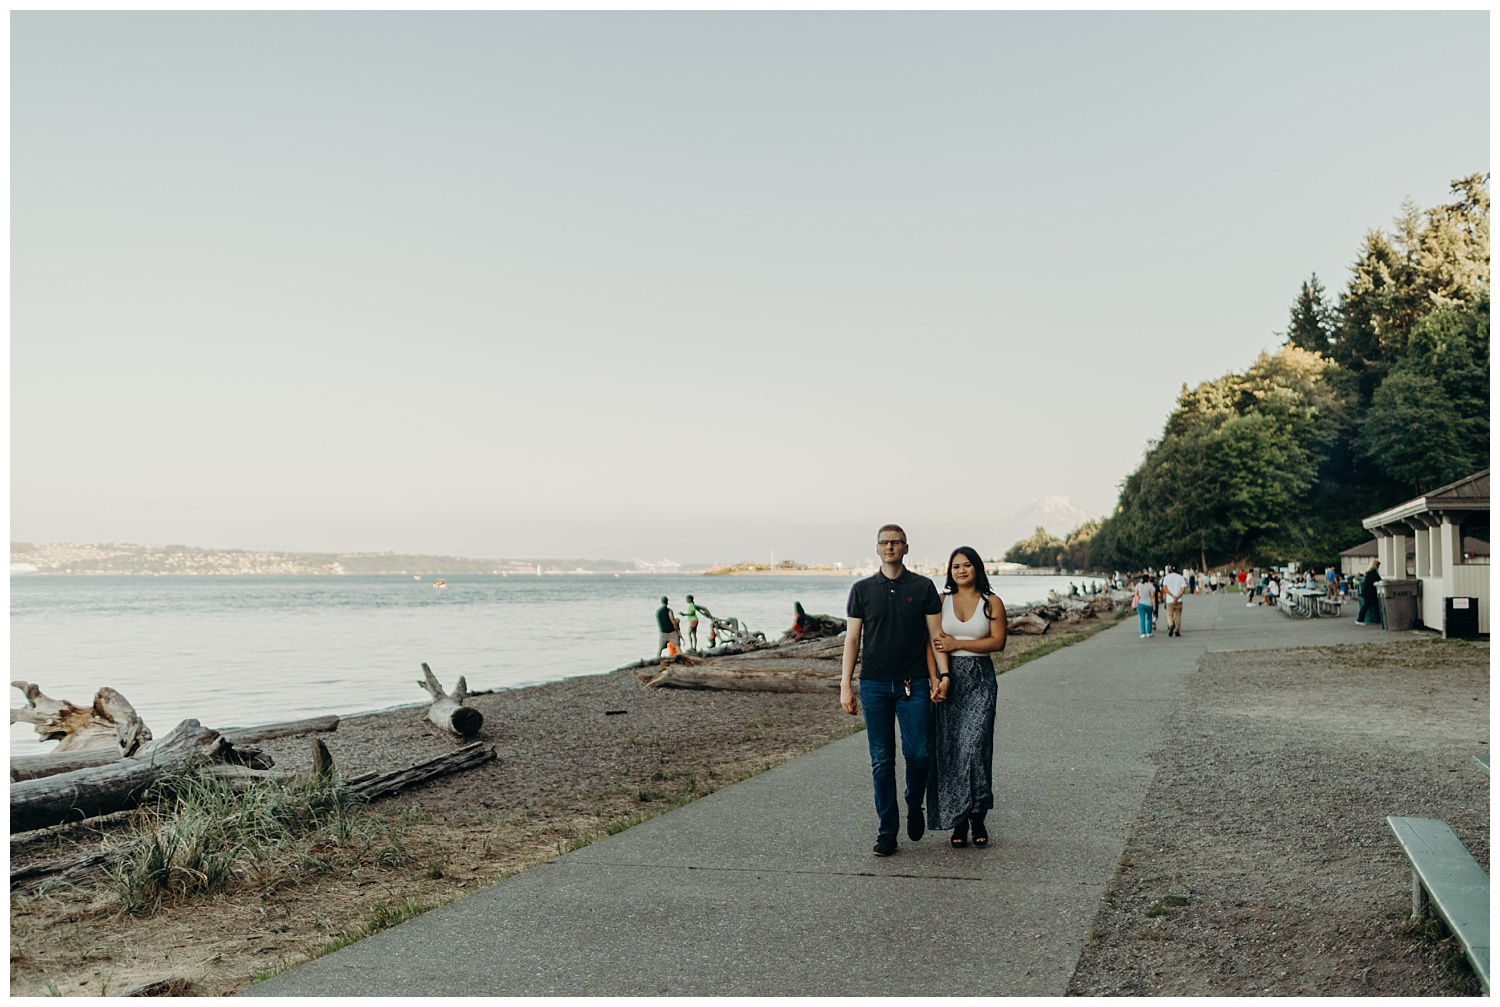 Jaynah and Kevin Point Defiance Rose Garden Owen Beach Tacoma Washington Engagement Session (24).jpg